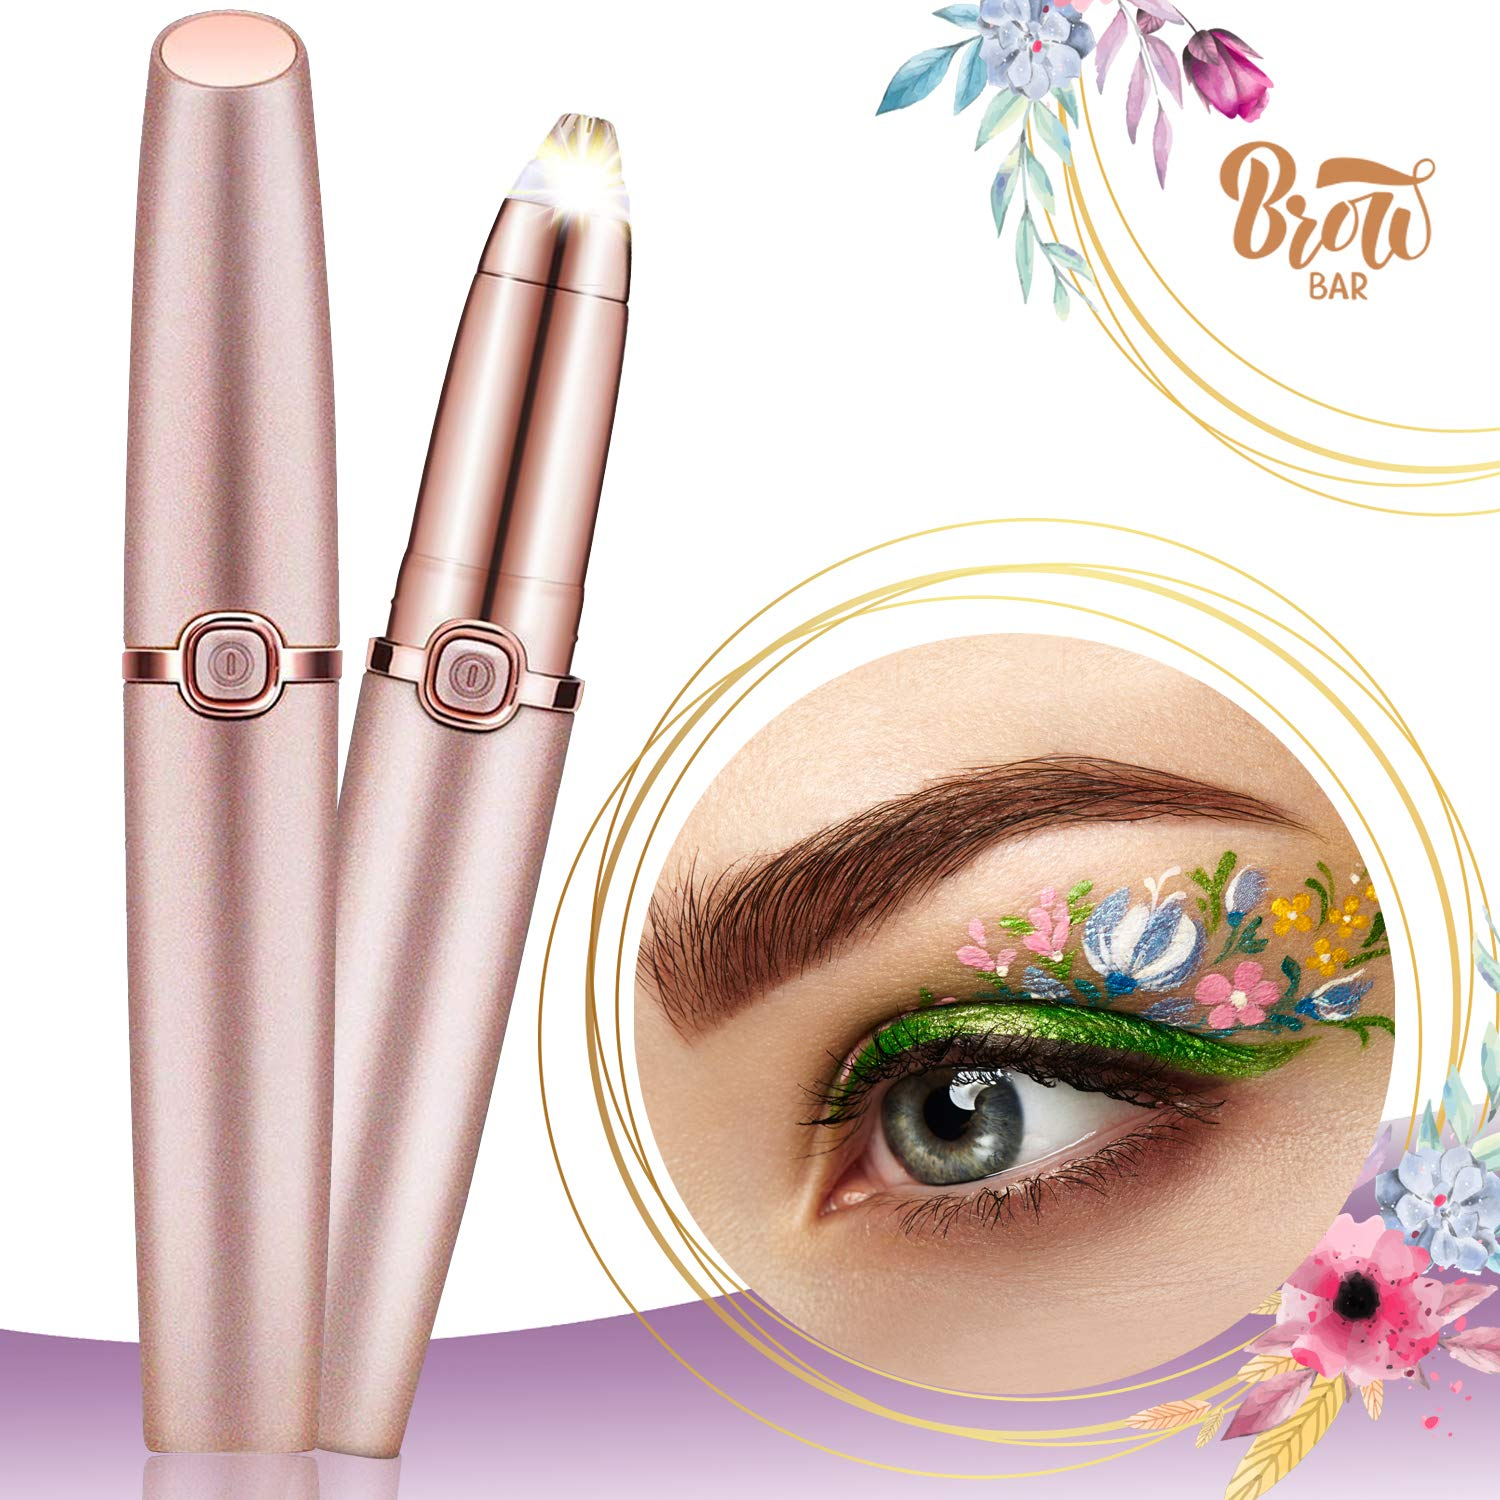 2019 Upgraded Eyebrow Trimmer for Women&Men,Eyebrow Hair Remover, Painless Portable Precision Electric Eyebrow Hair Trimmer, Eyebrow Hair Removal Razor with Light, Rose Gold (Batteries not Included)